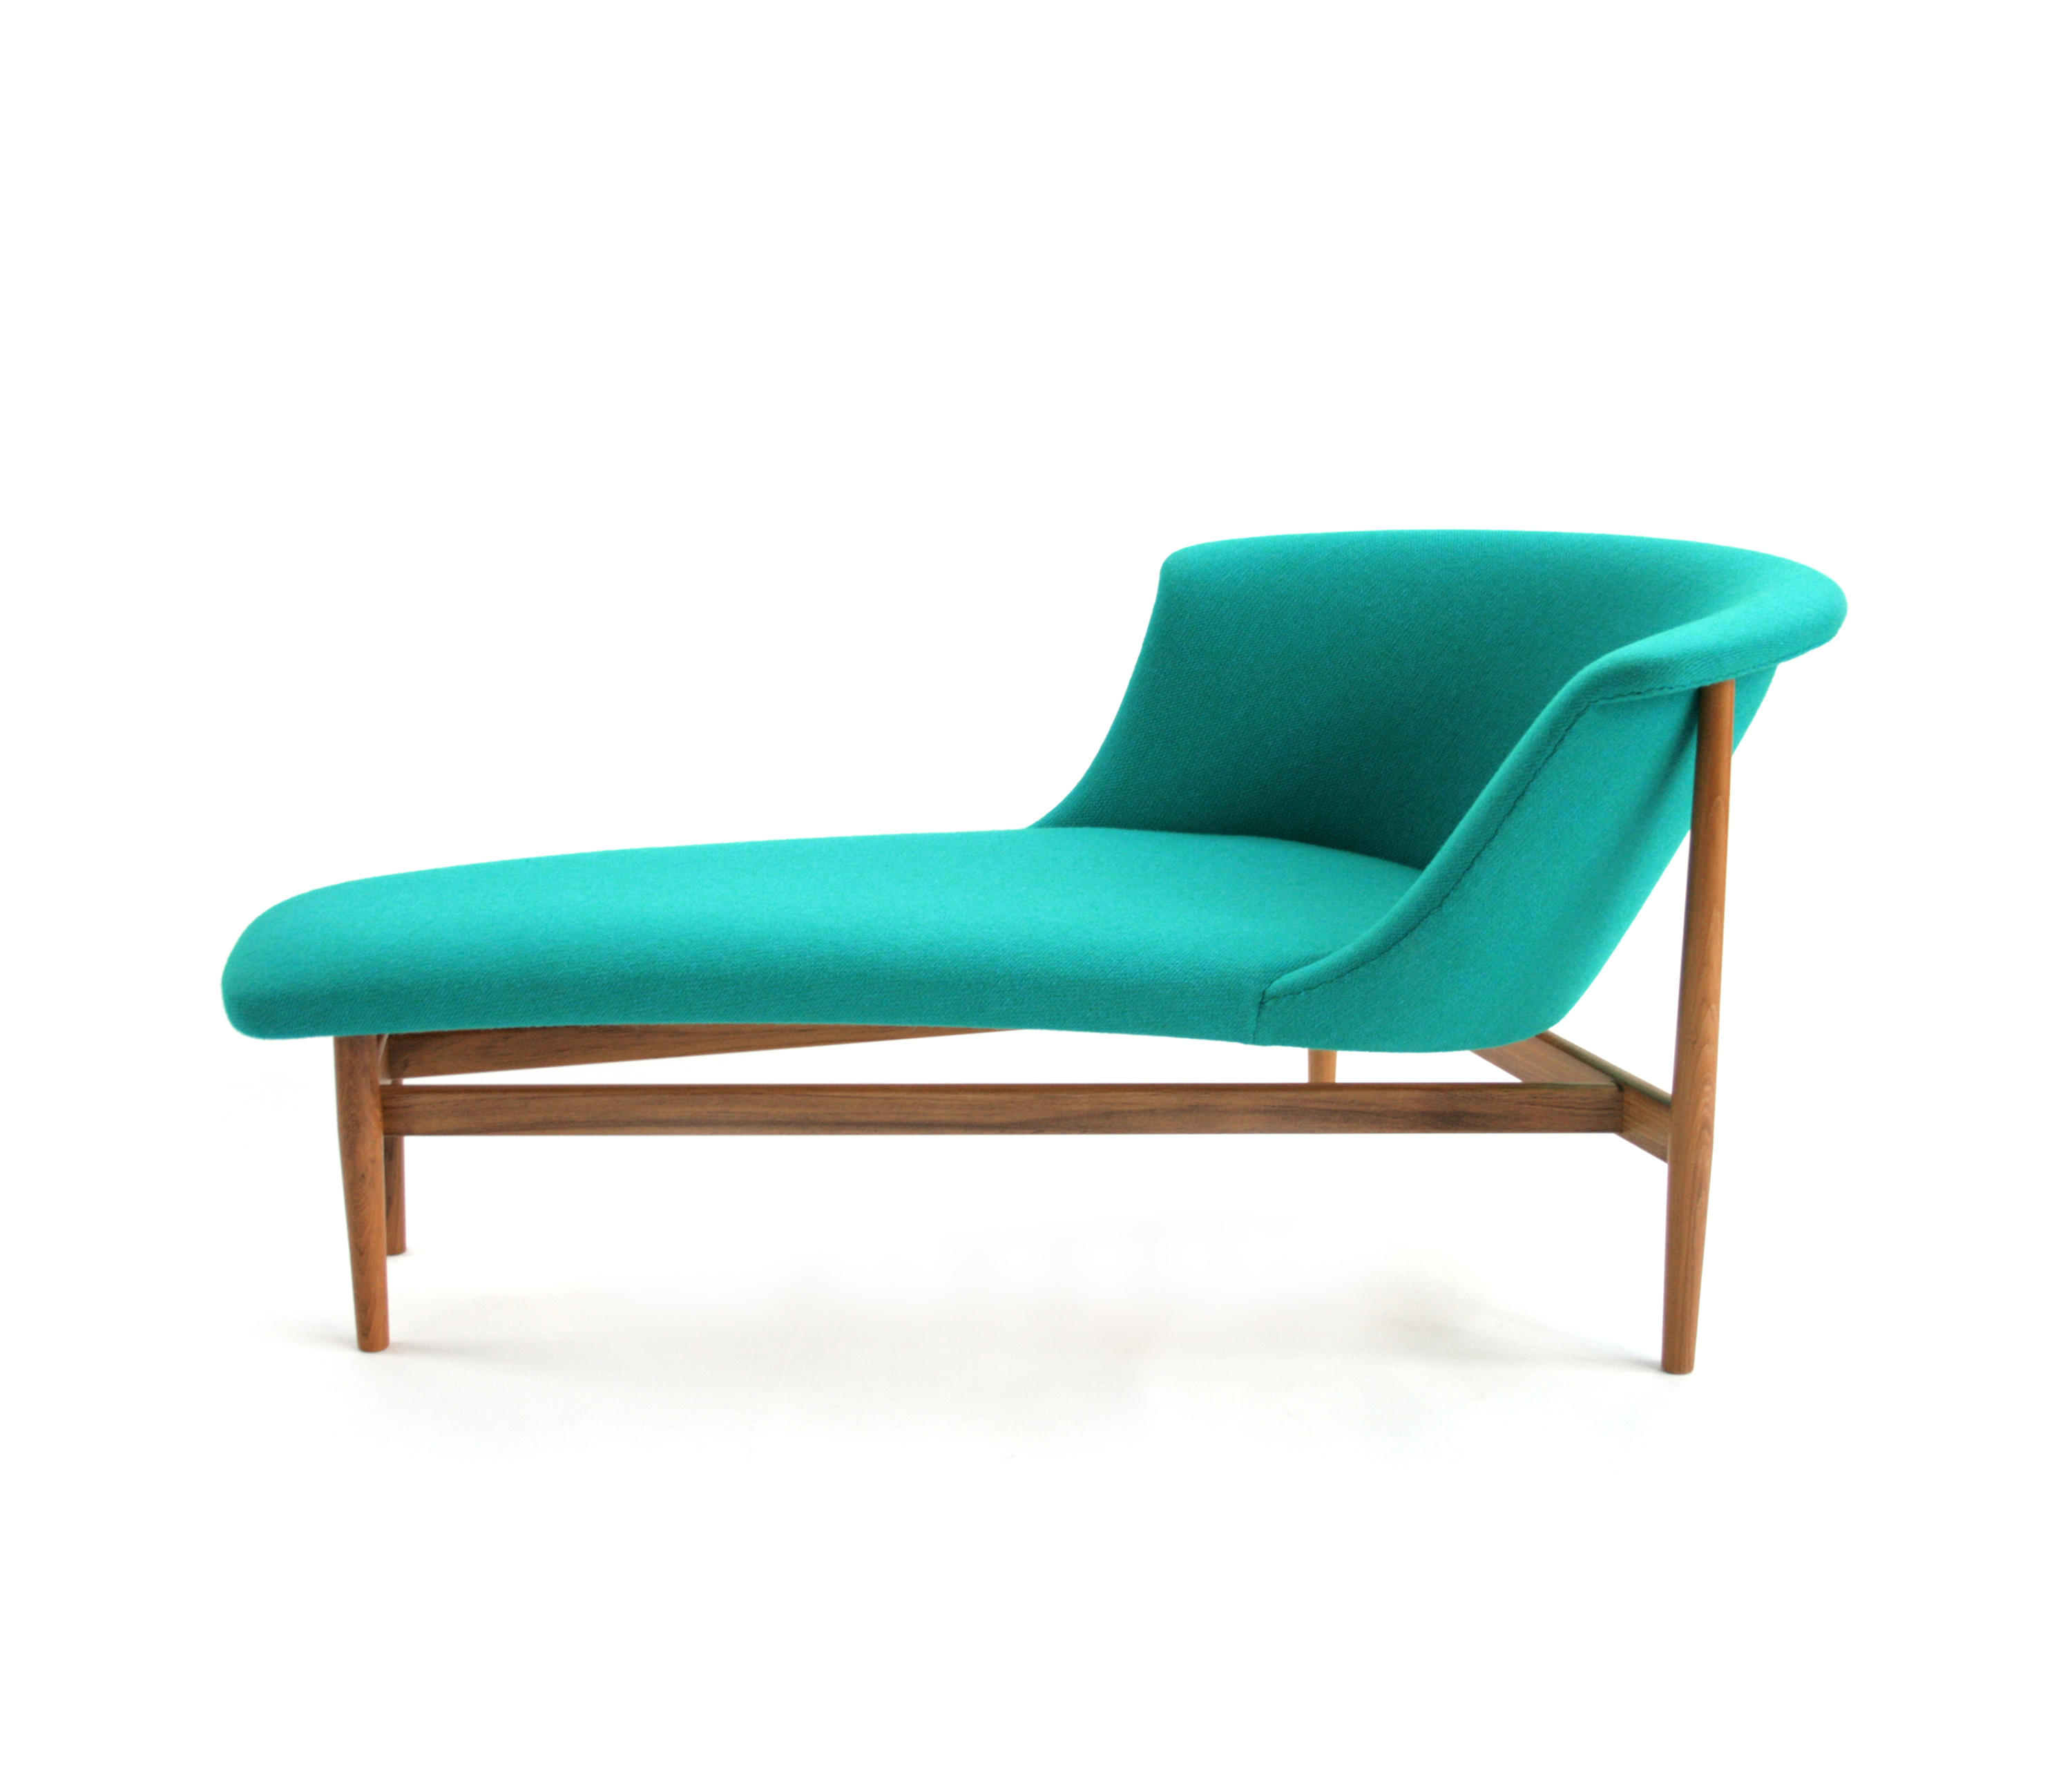 Nd 07 chaise longue chaise longues from kitani japan inc for Chaises longues en bois